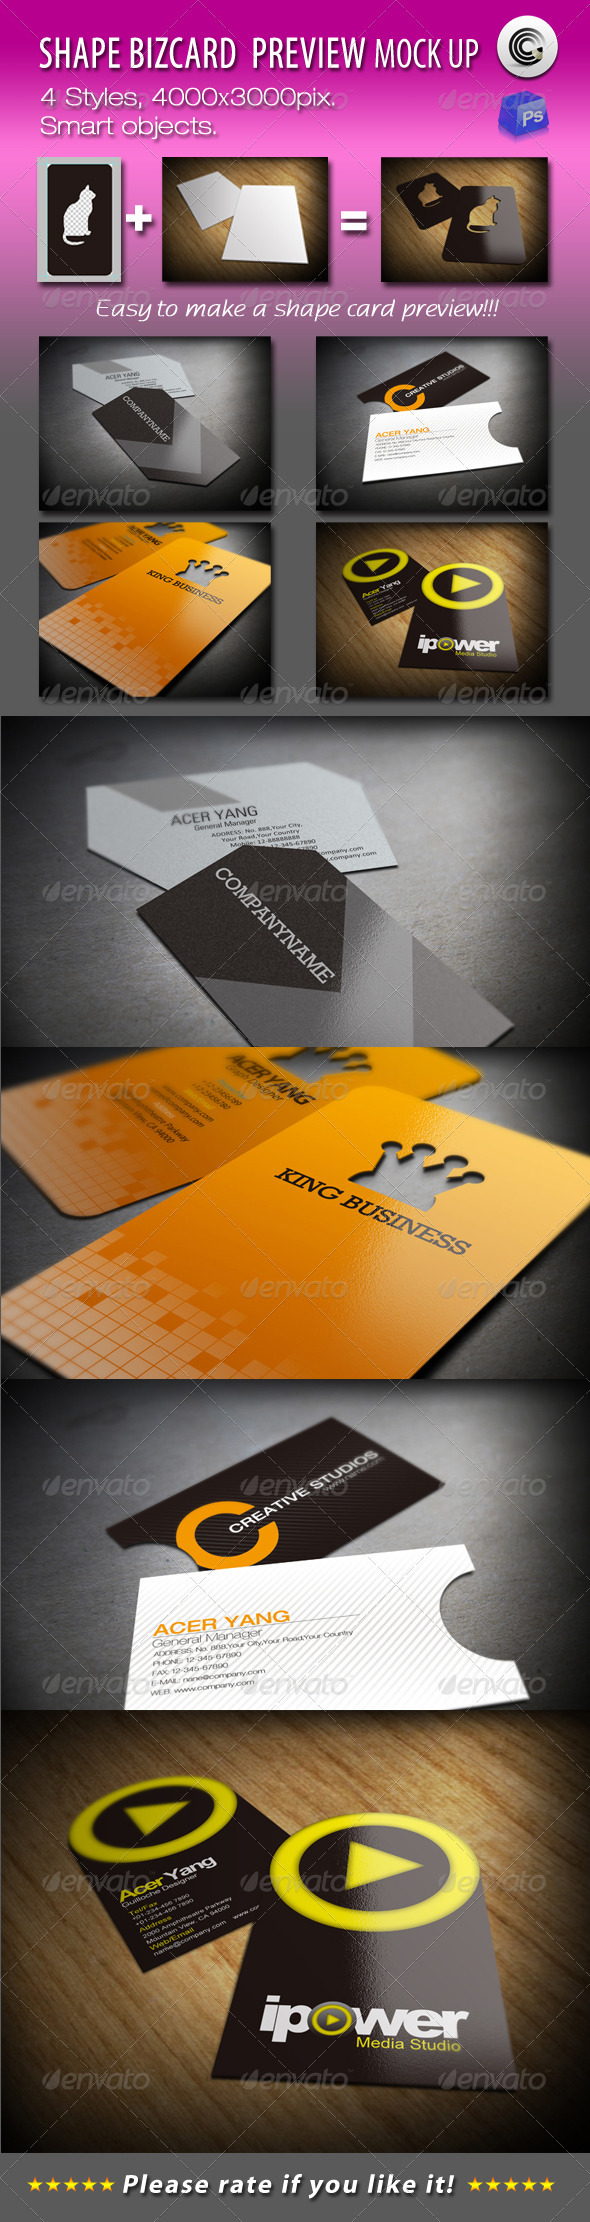 Shape BizCard Preview Mock-ups - Business Cards Print